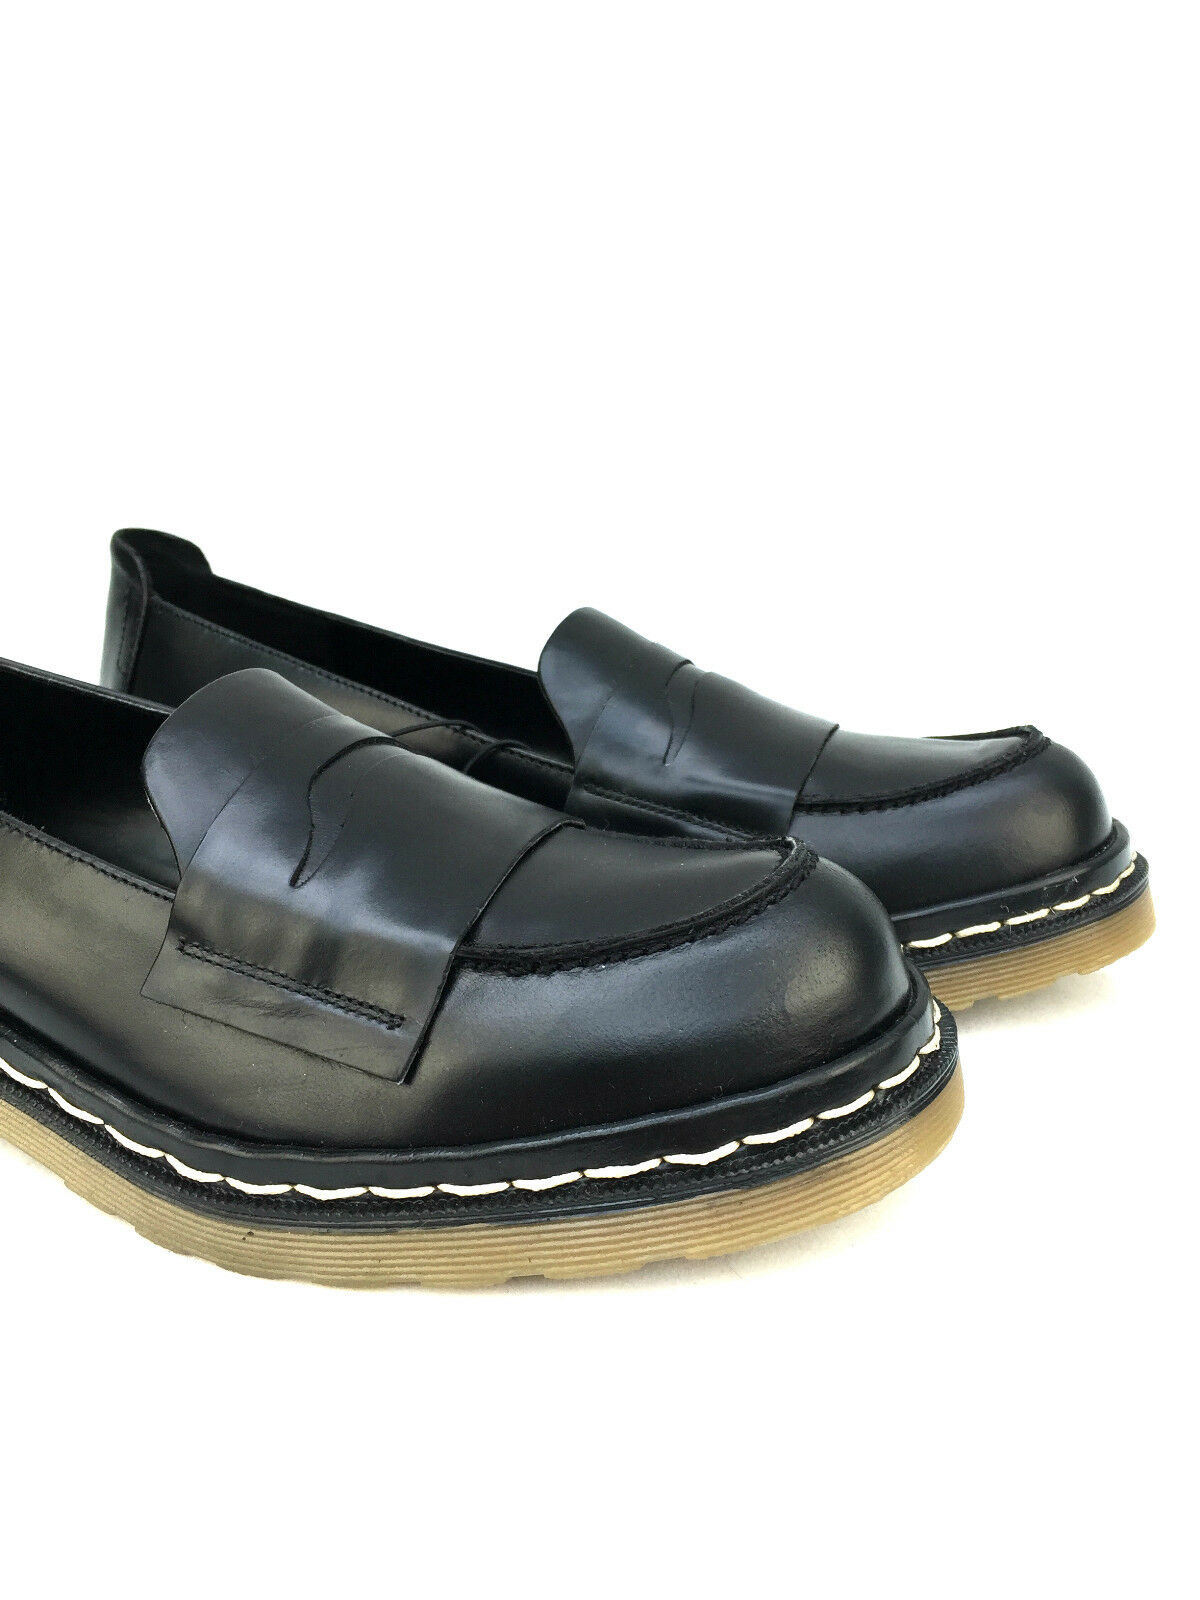 ZARA BLACK LOAFERS LEATHER MOCCASIN Schuhe FLATS LOAFERS BLACK SIZE 37 39 8b1193